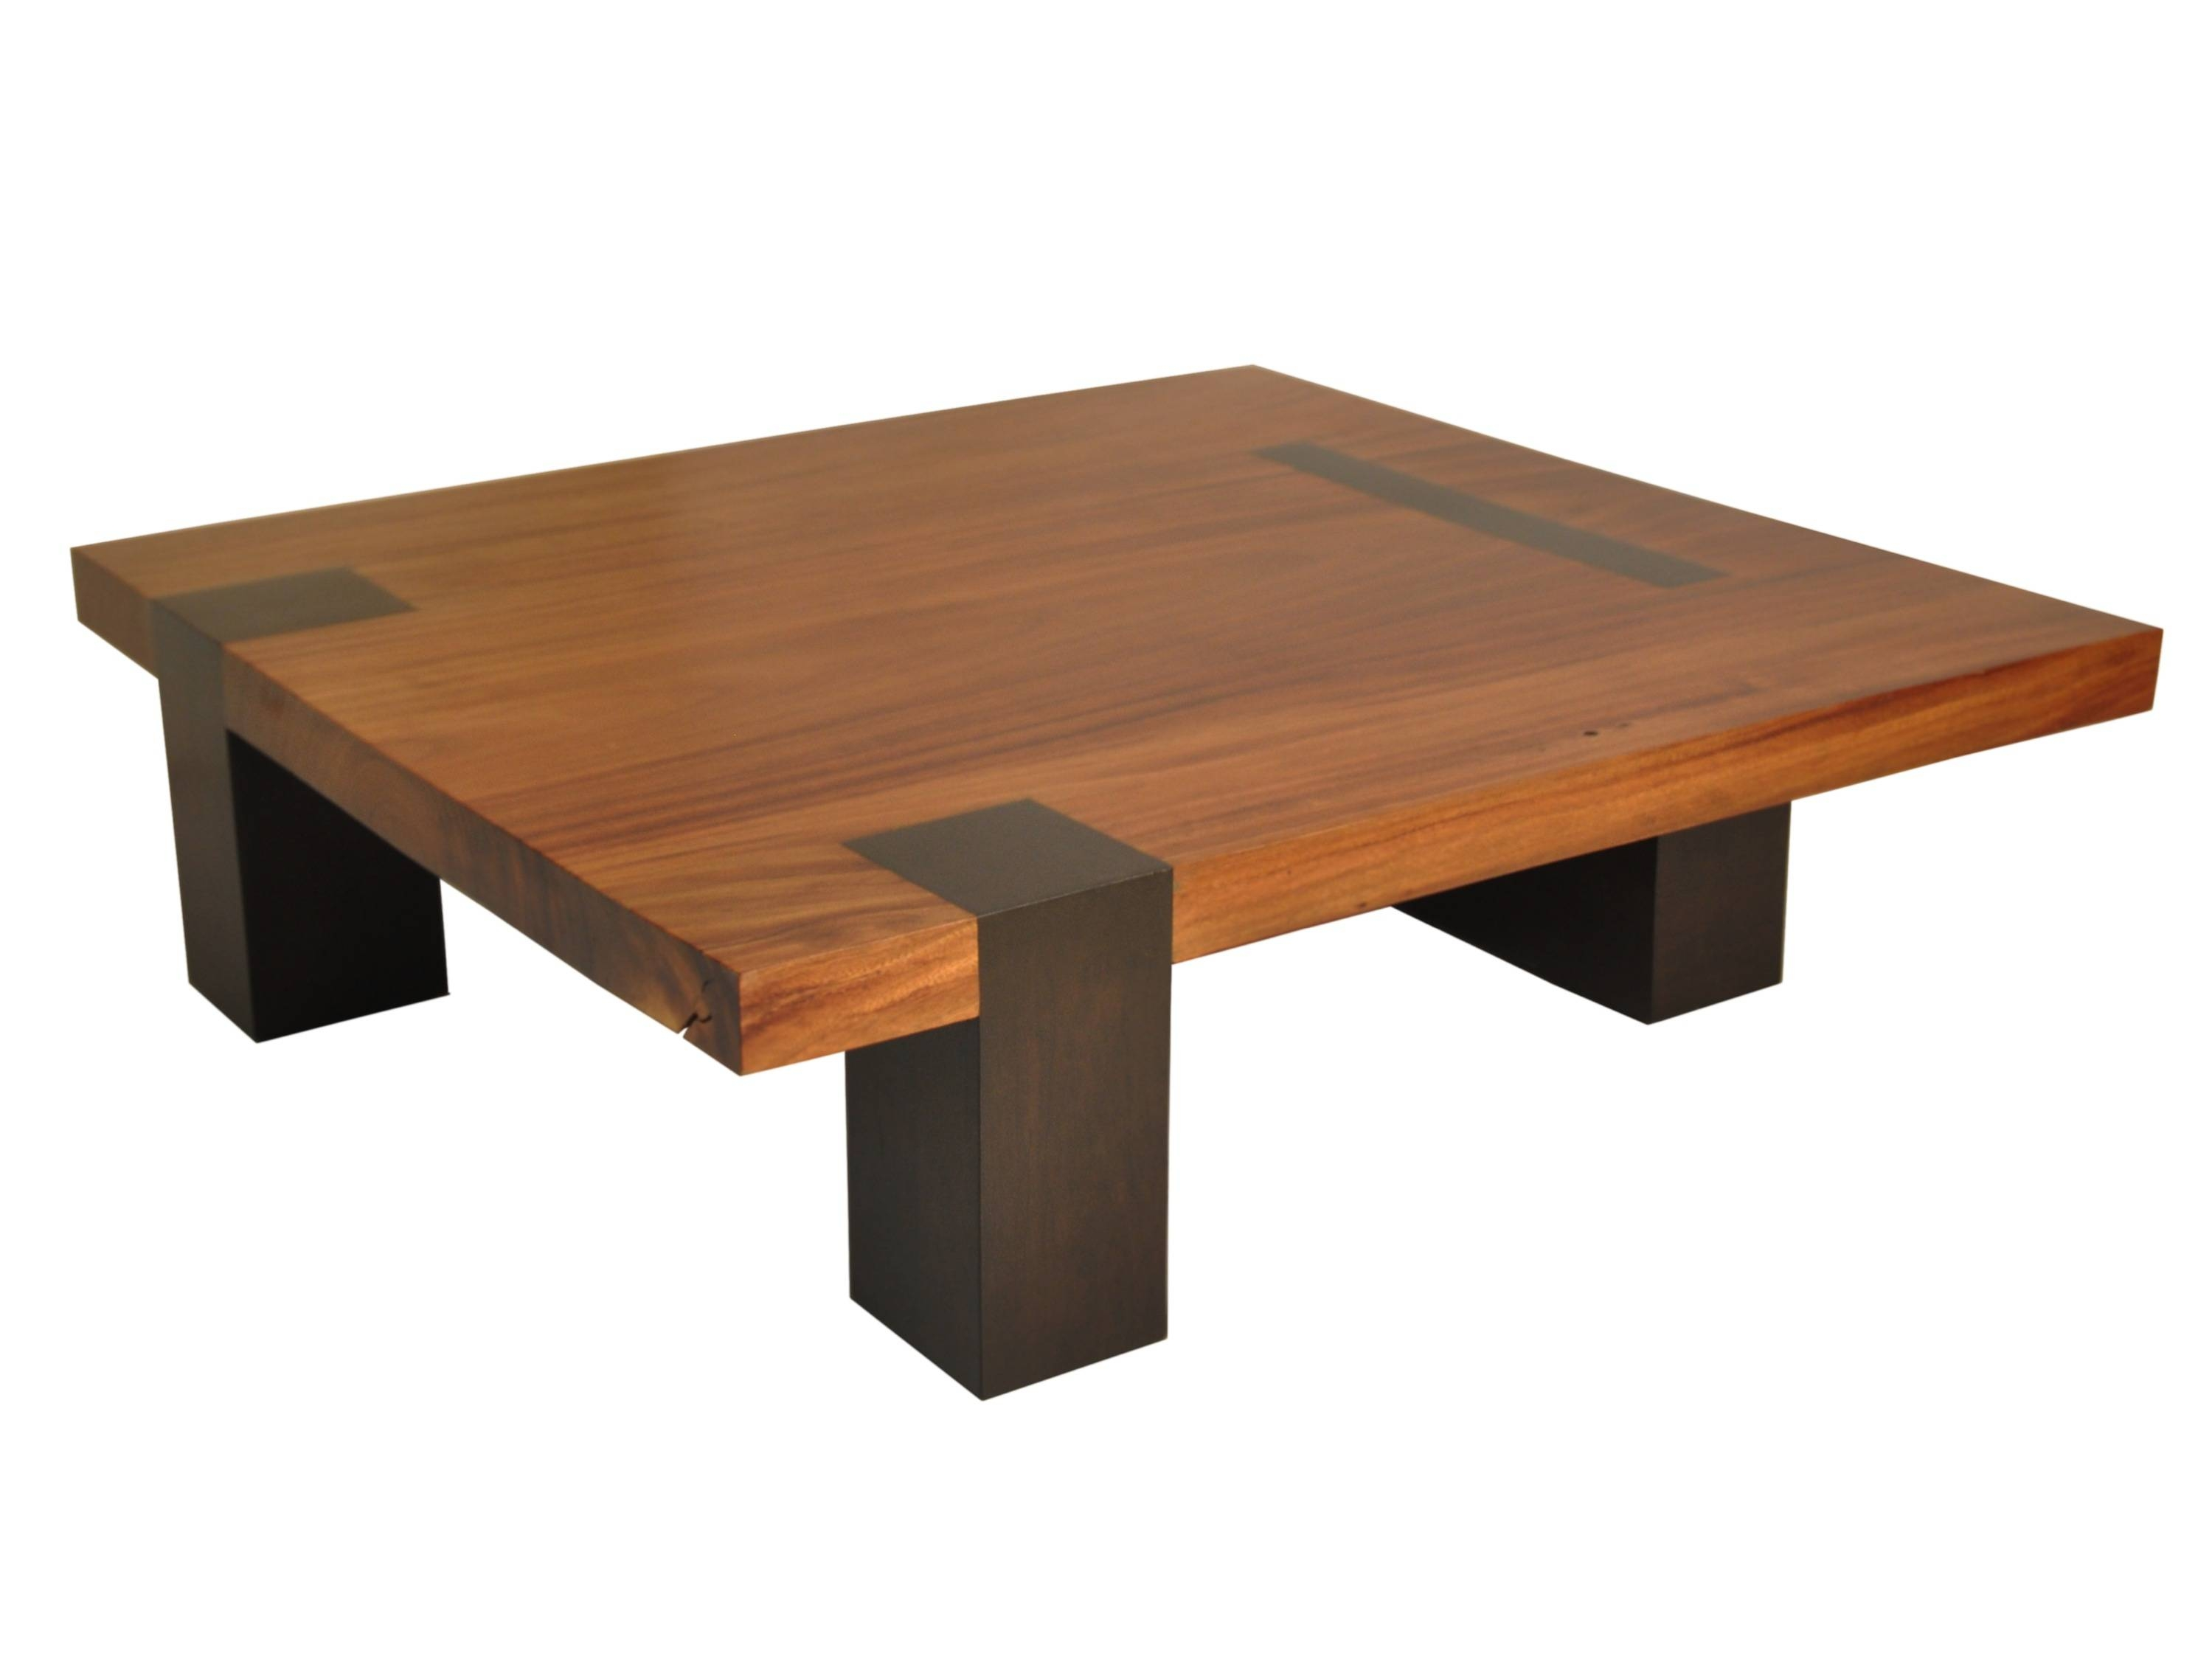 2017 Best of Square Wooden Coffee Tables